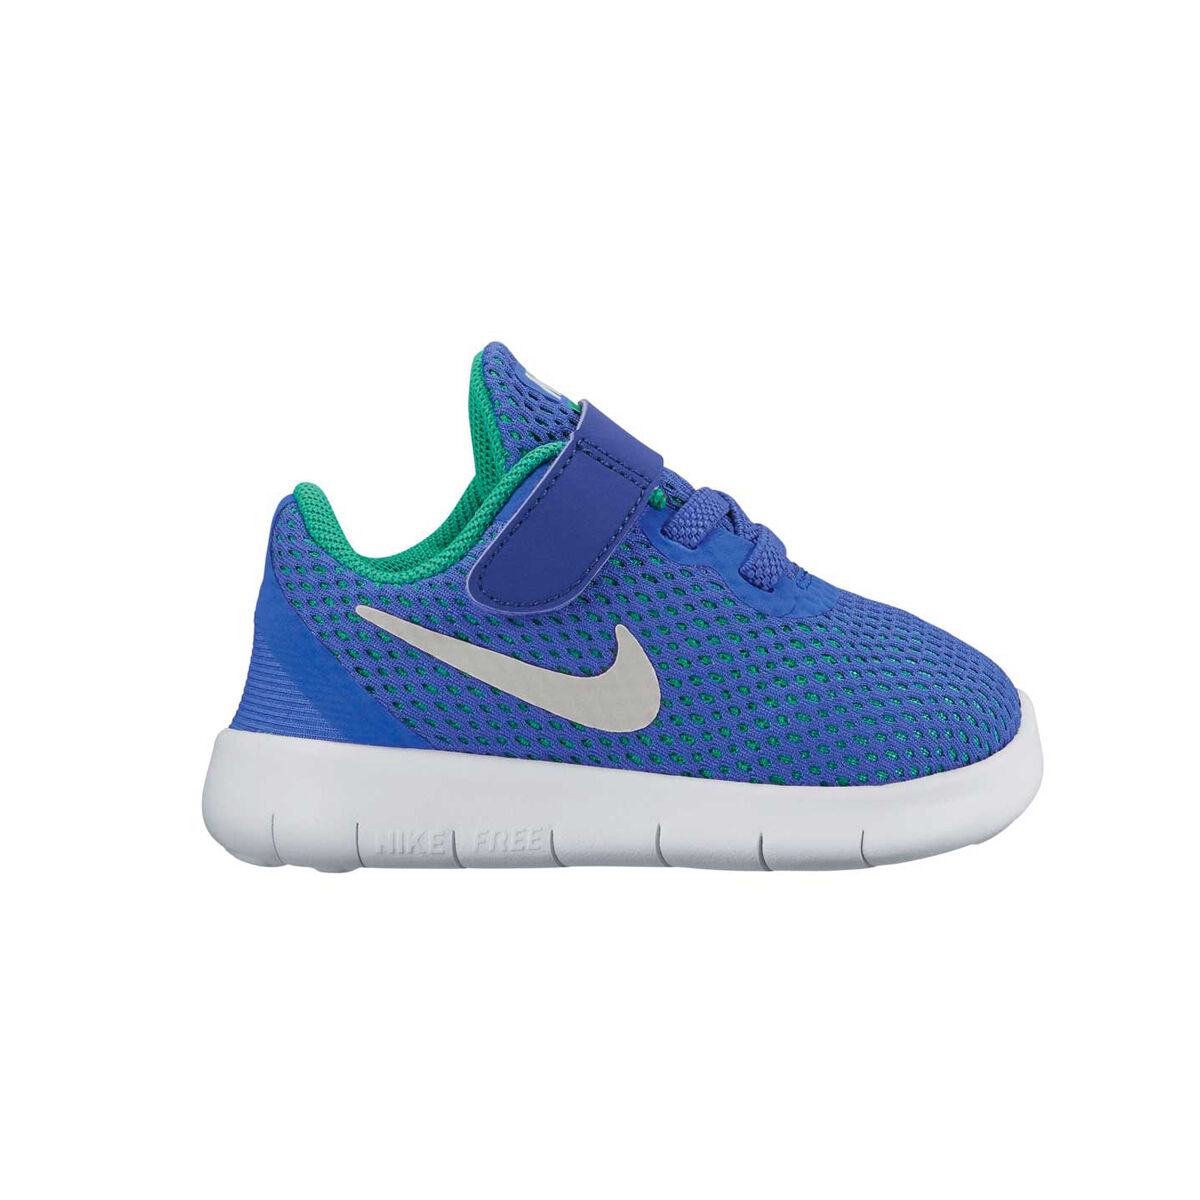 Nike Free Run Toddlers Shoes